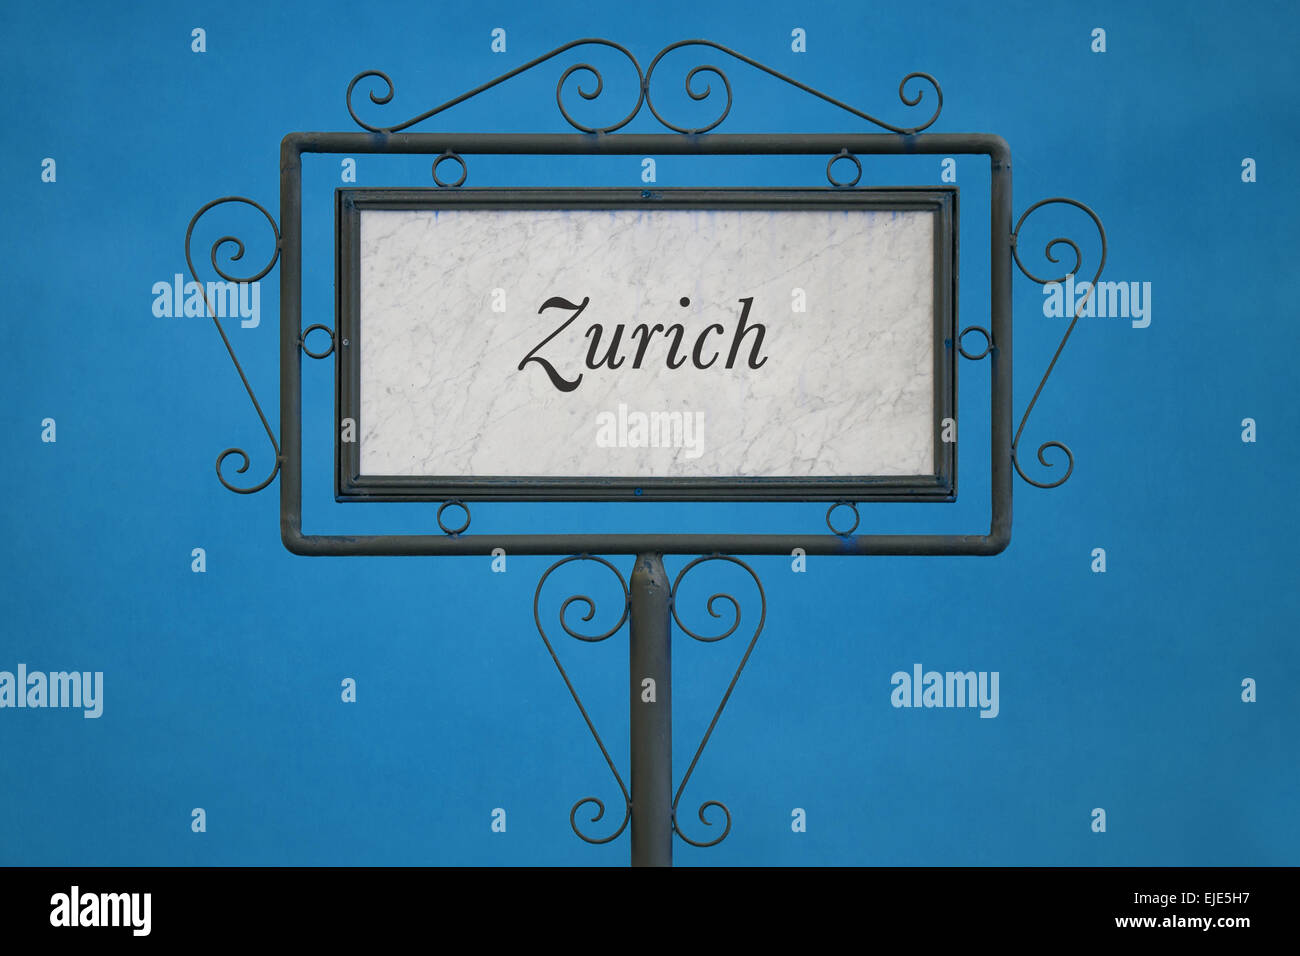 Zurich on a Signboard. Light Blue Background. - Stock Image